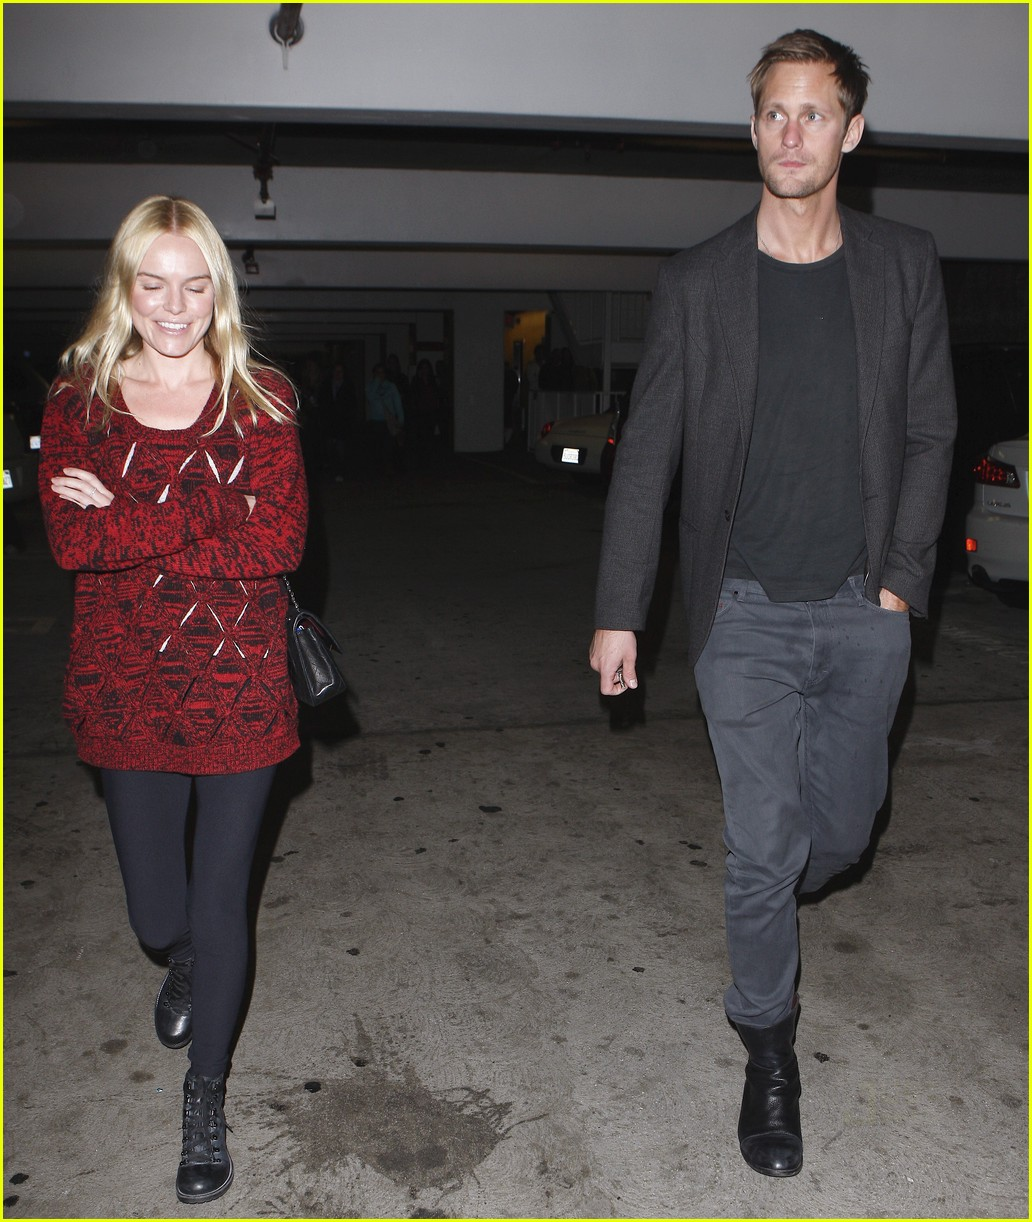 http://3.bp.blogspot.com/_OoofzdWdU8s/SwvXjPTpY3I/AAAAAAAALO4/PBKISh1Oqxo/s1600/alexander-skarsgard-kate-bosworth-movie-night-03.jpg